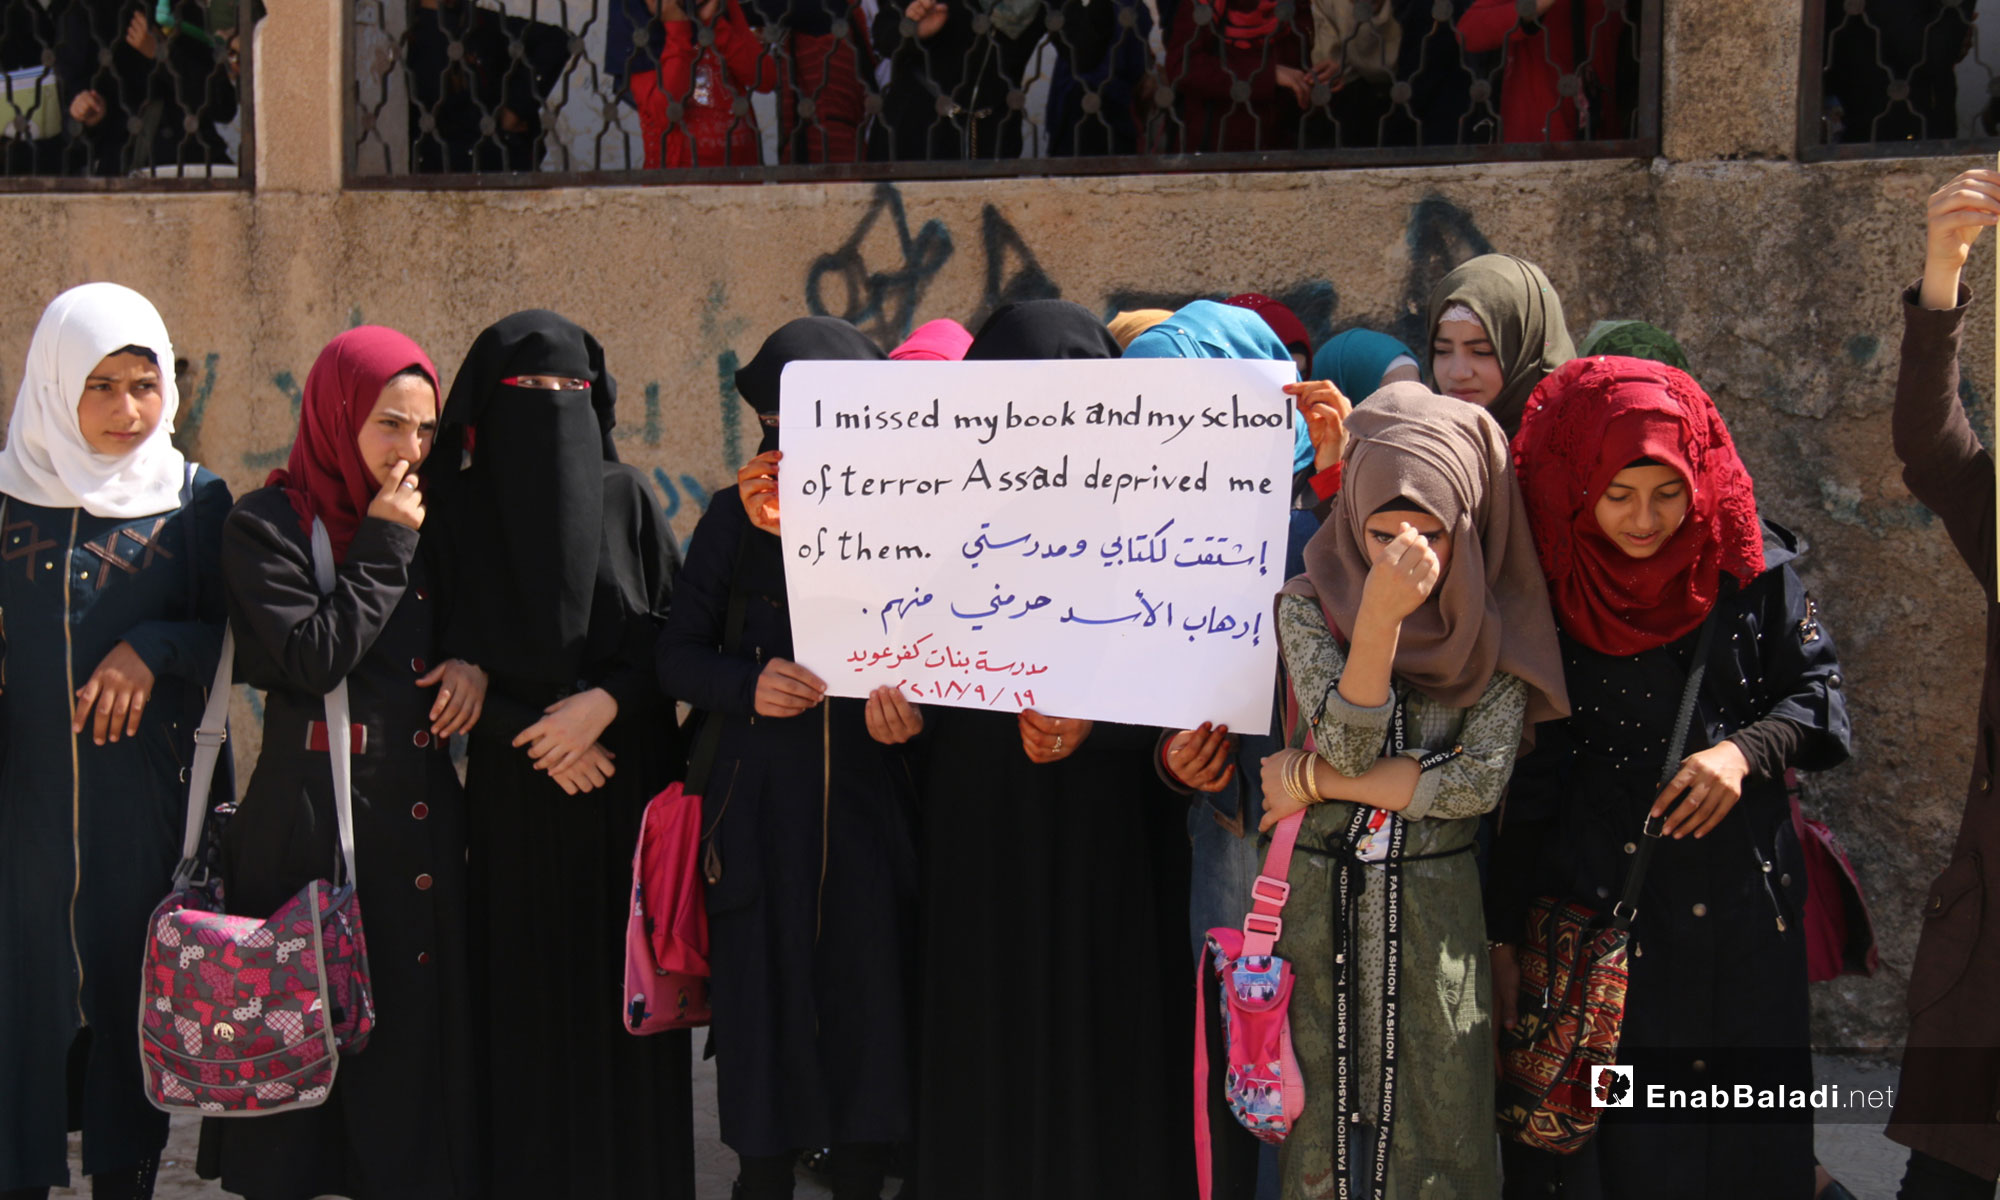 A protest organized by the educational staff of Kafr Oweid Town, rural Idlib, calling for the support of education in the liberated areas – September 19, 2018 (Enab Baladi )